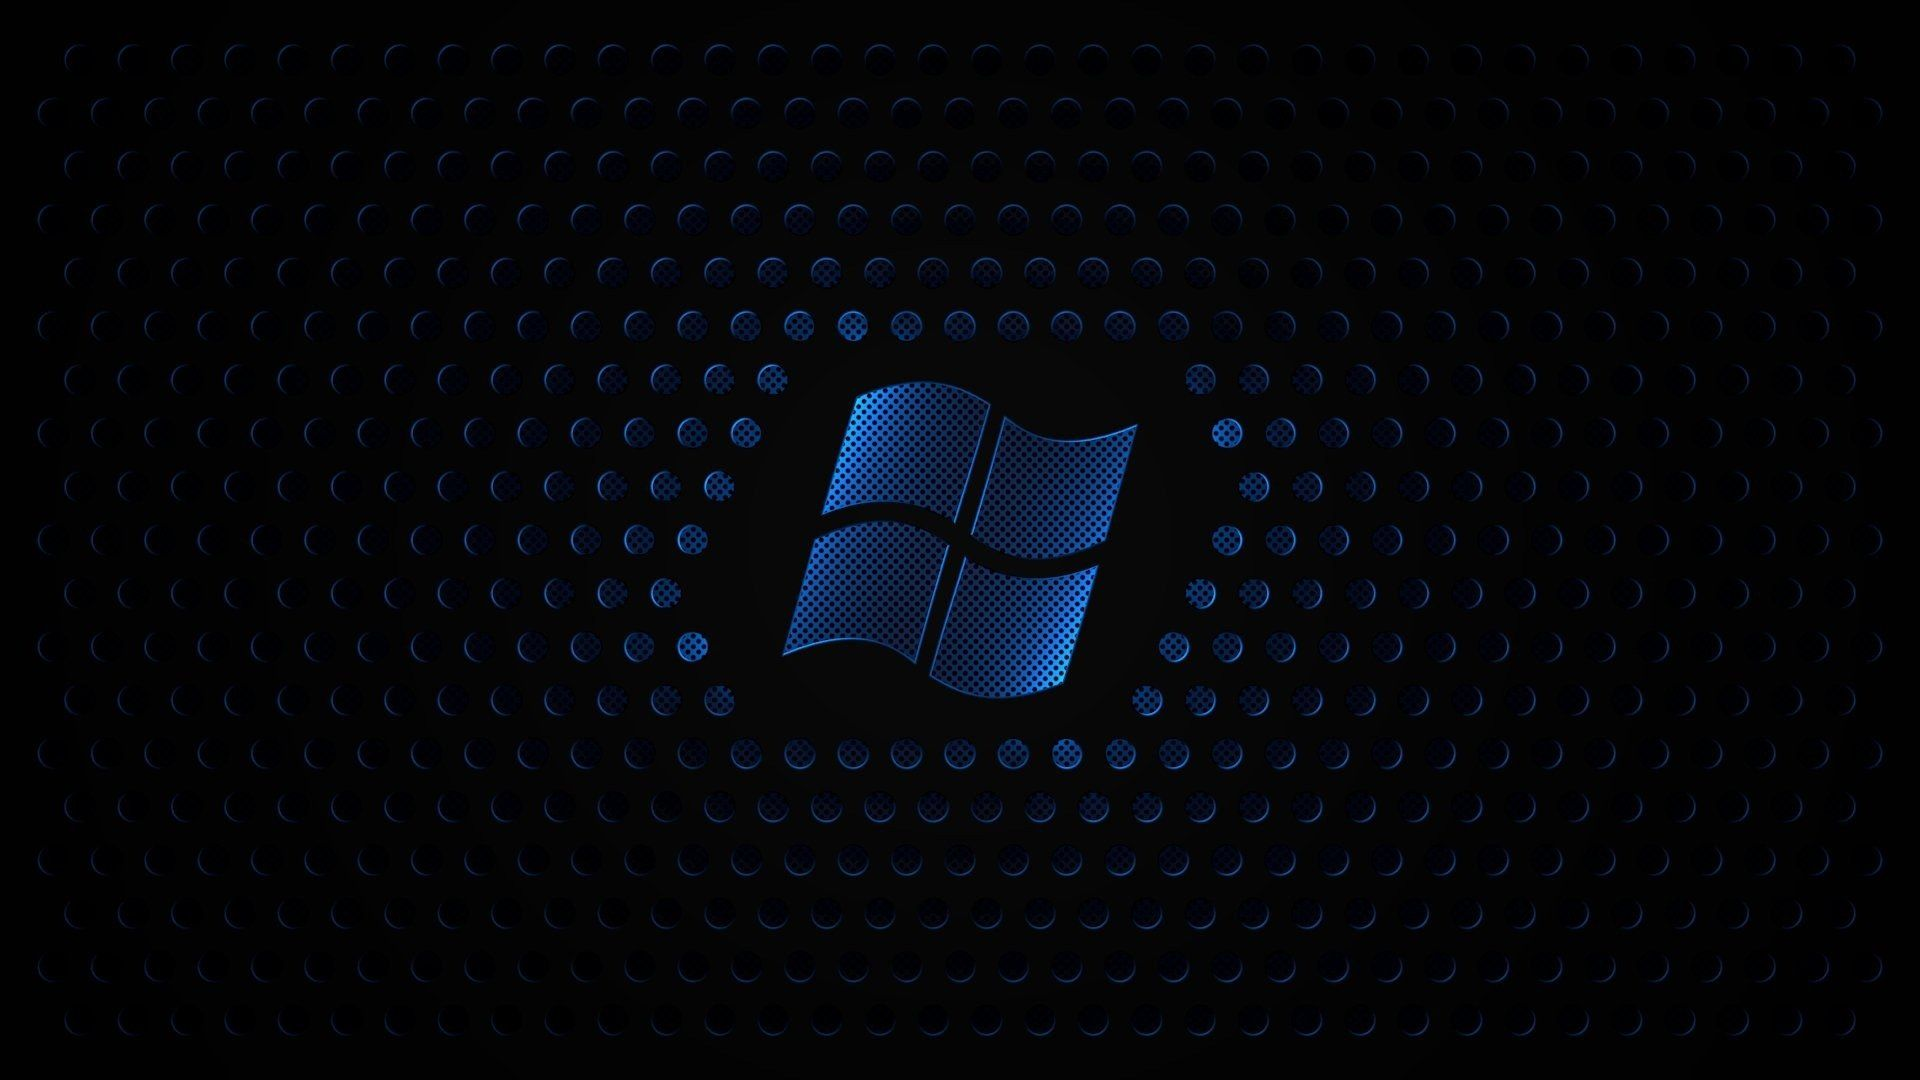 Windows Professional Wallpapers Hd Wallpaperpulse 1280 800 Windows 7 Professional Wallpap Windows Wallpaper Black And Blue Background Background Hd Wallpaper